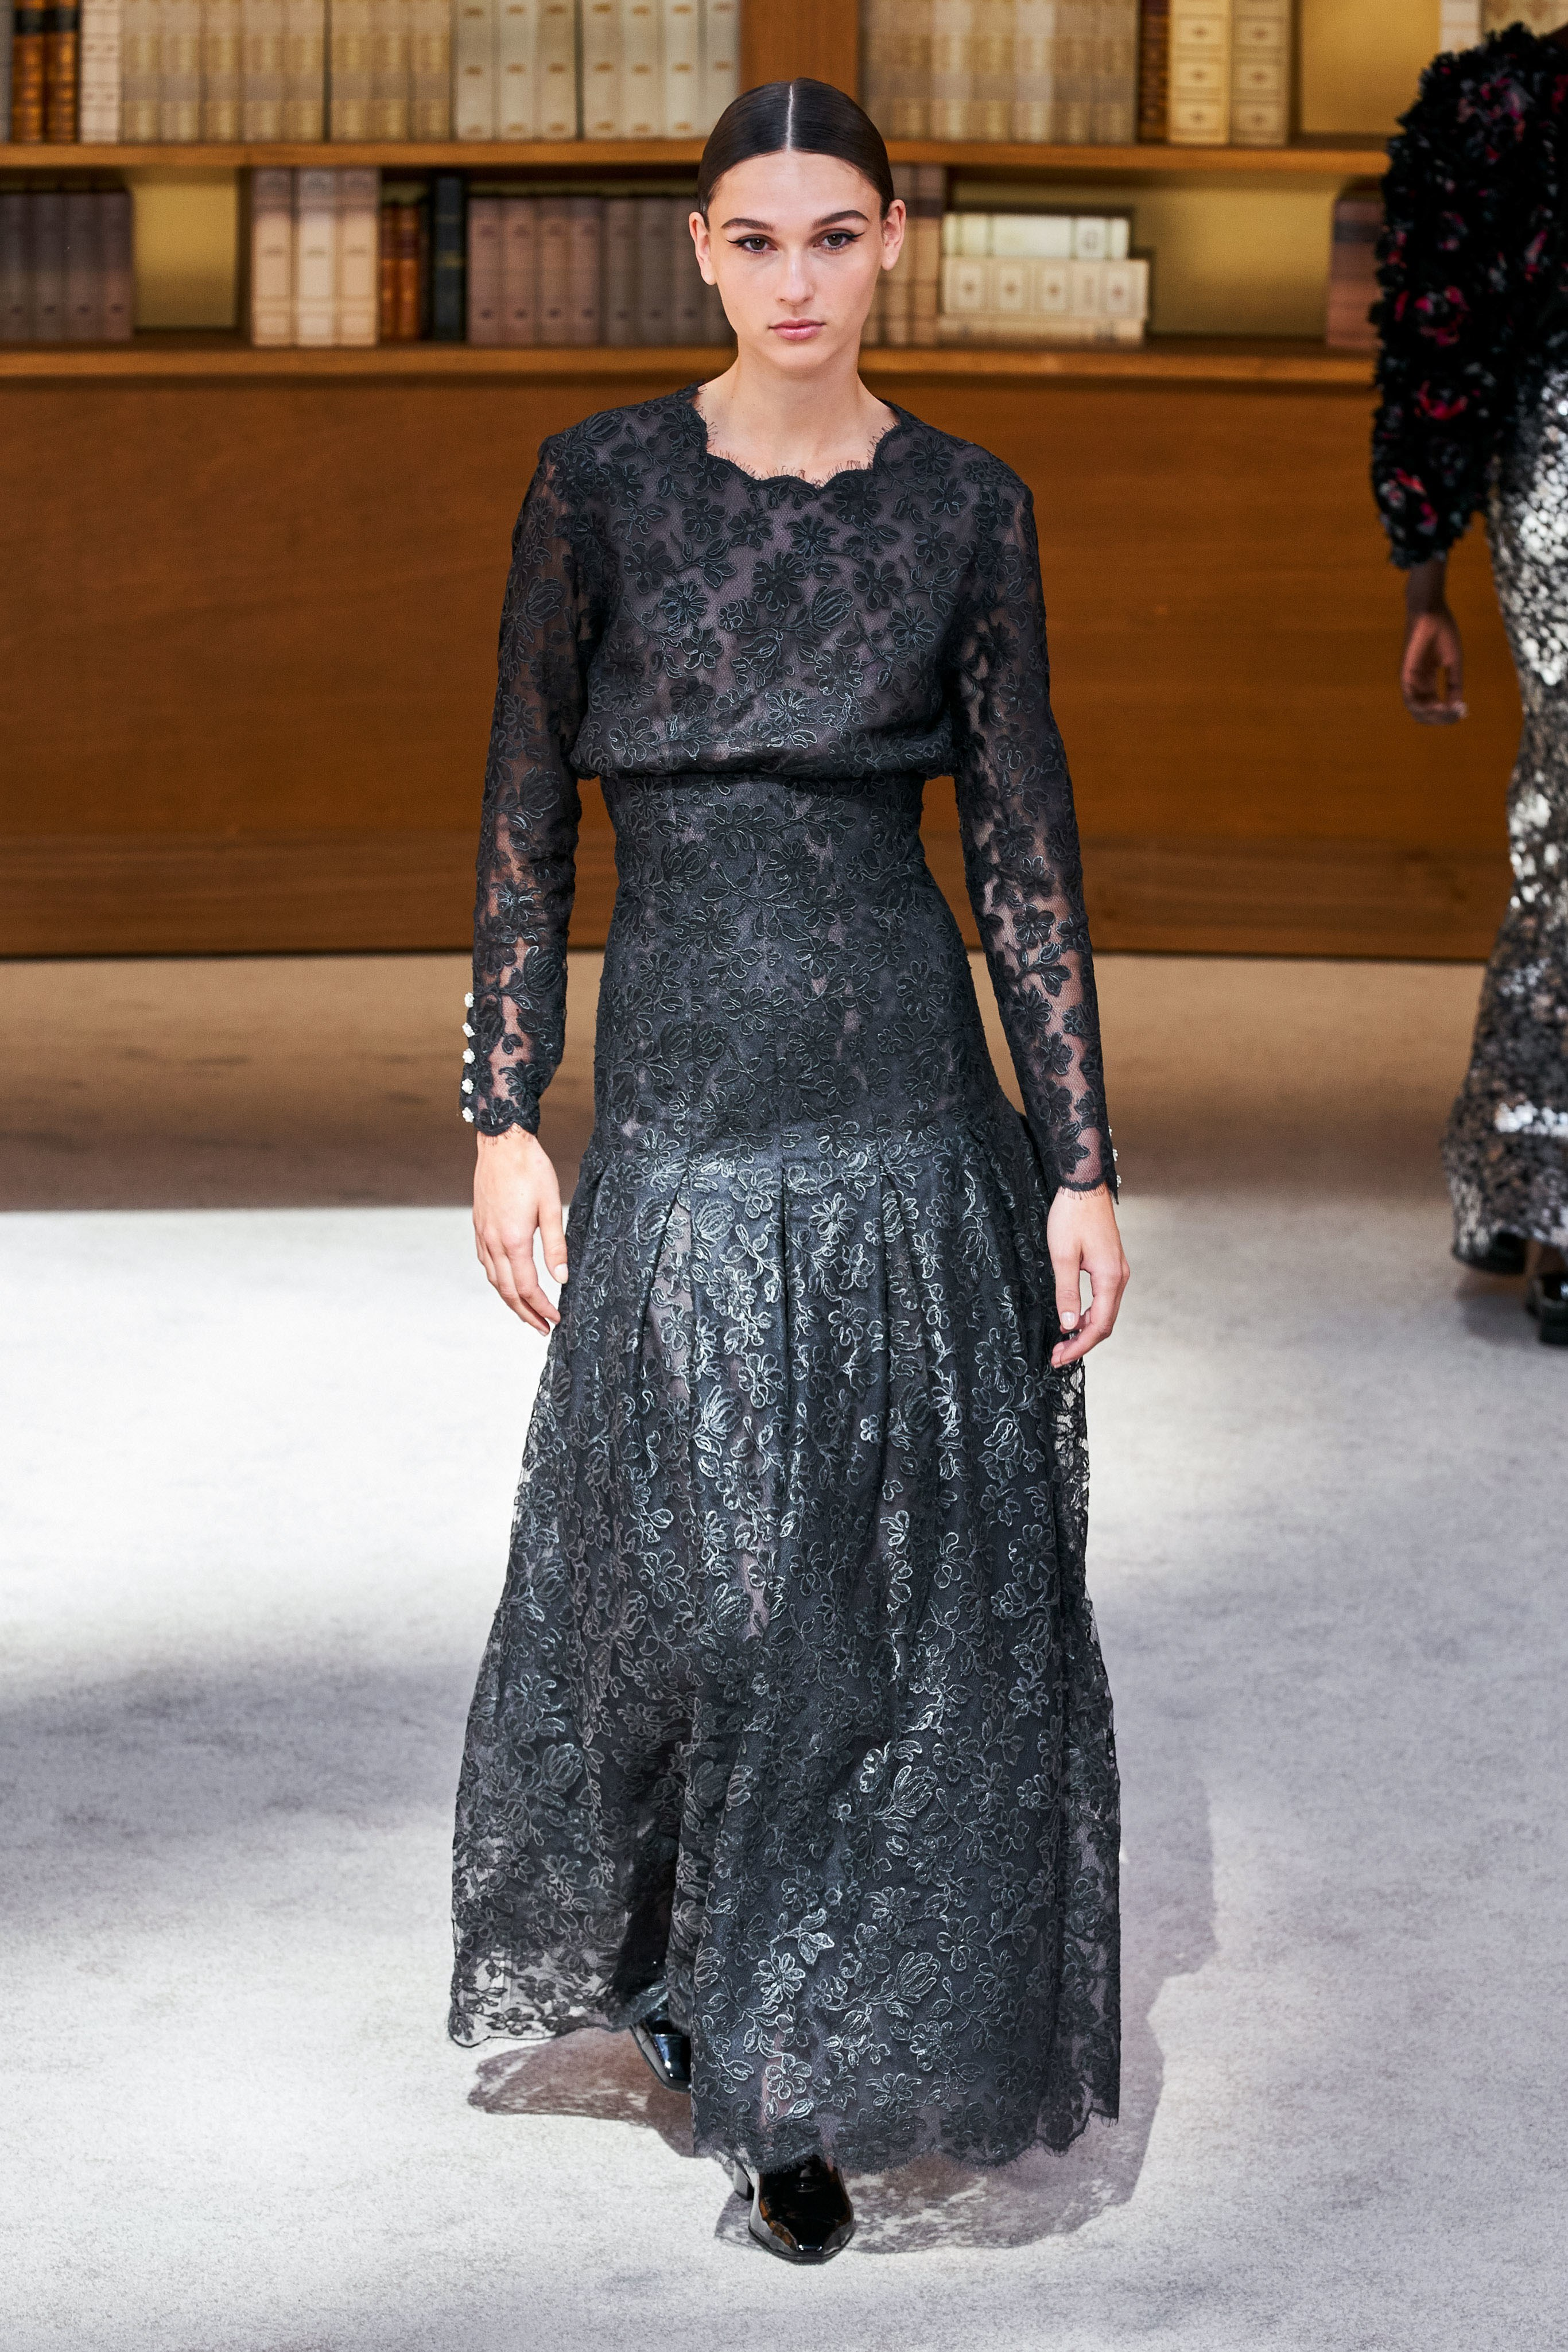 Trini | Chanel Couture Fall 2019 Collection